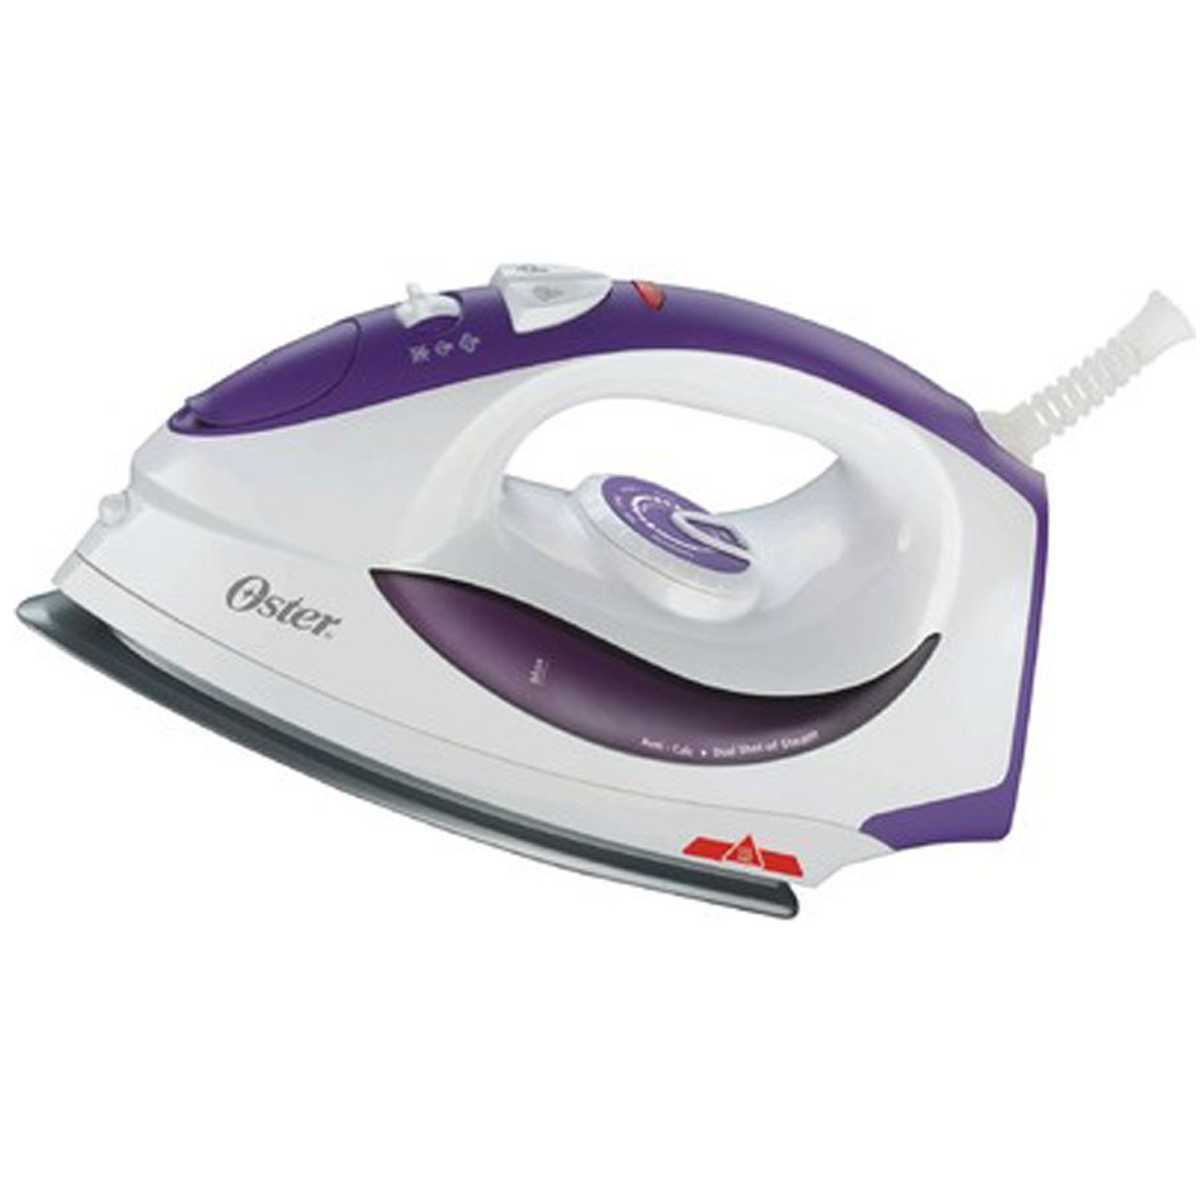 Picture of Oster Steam Iron 5806